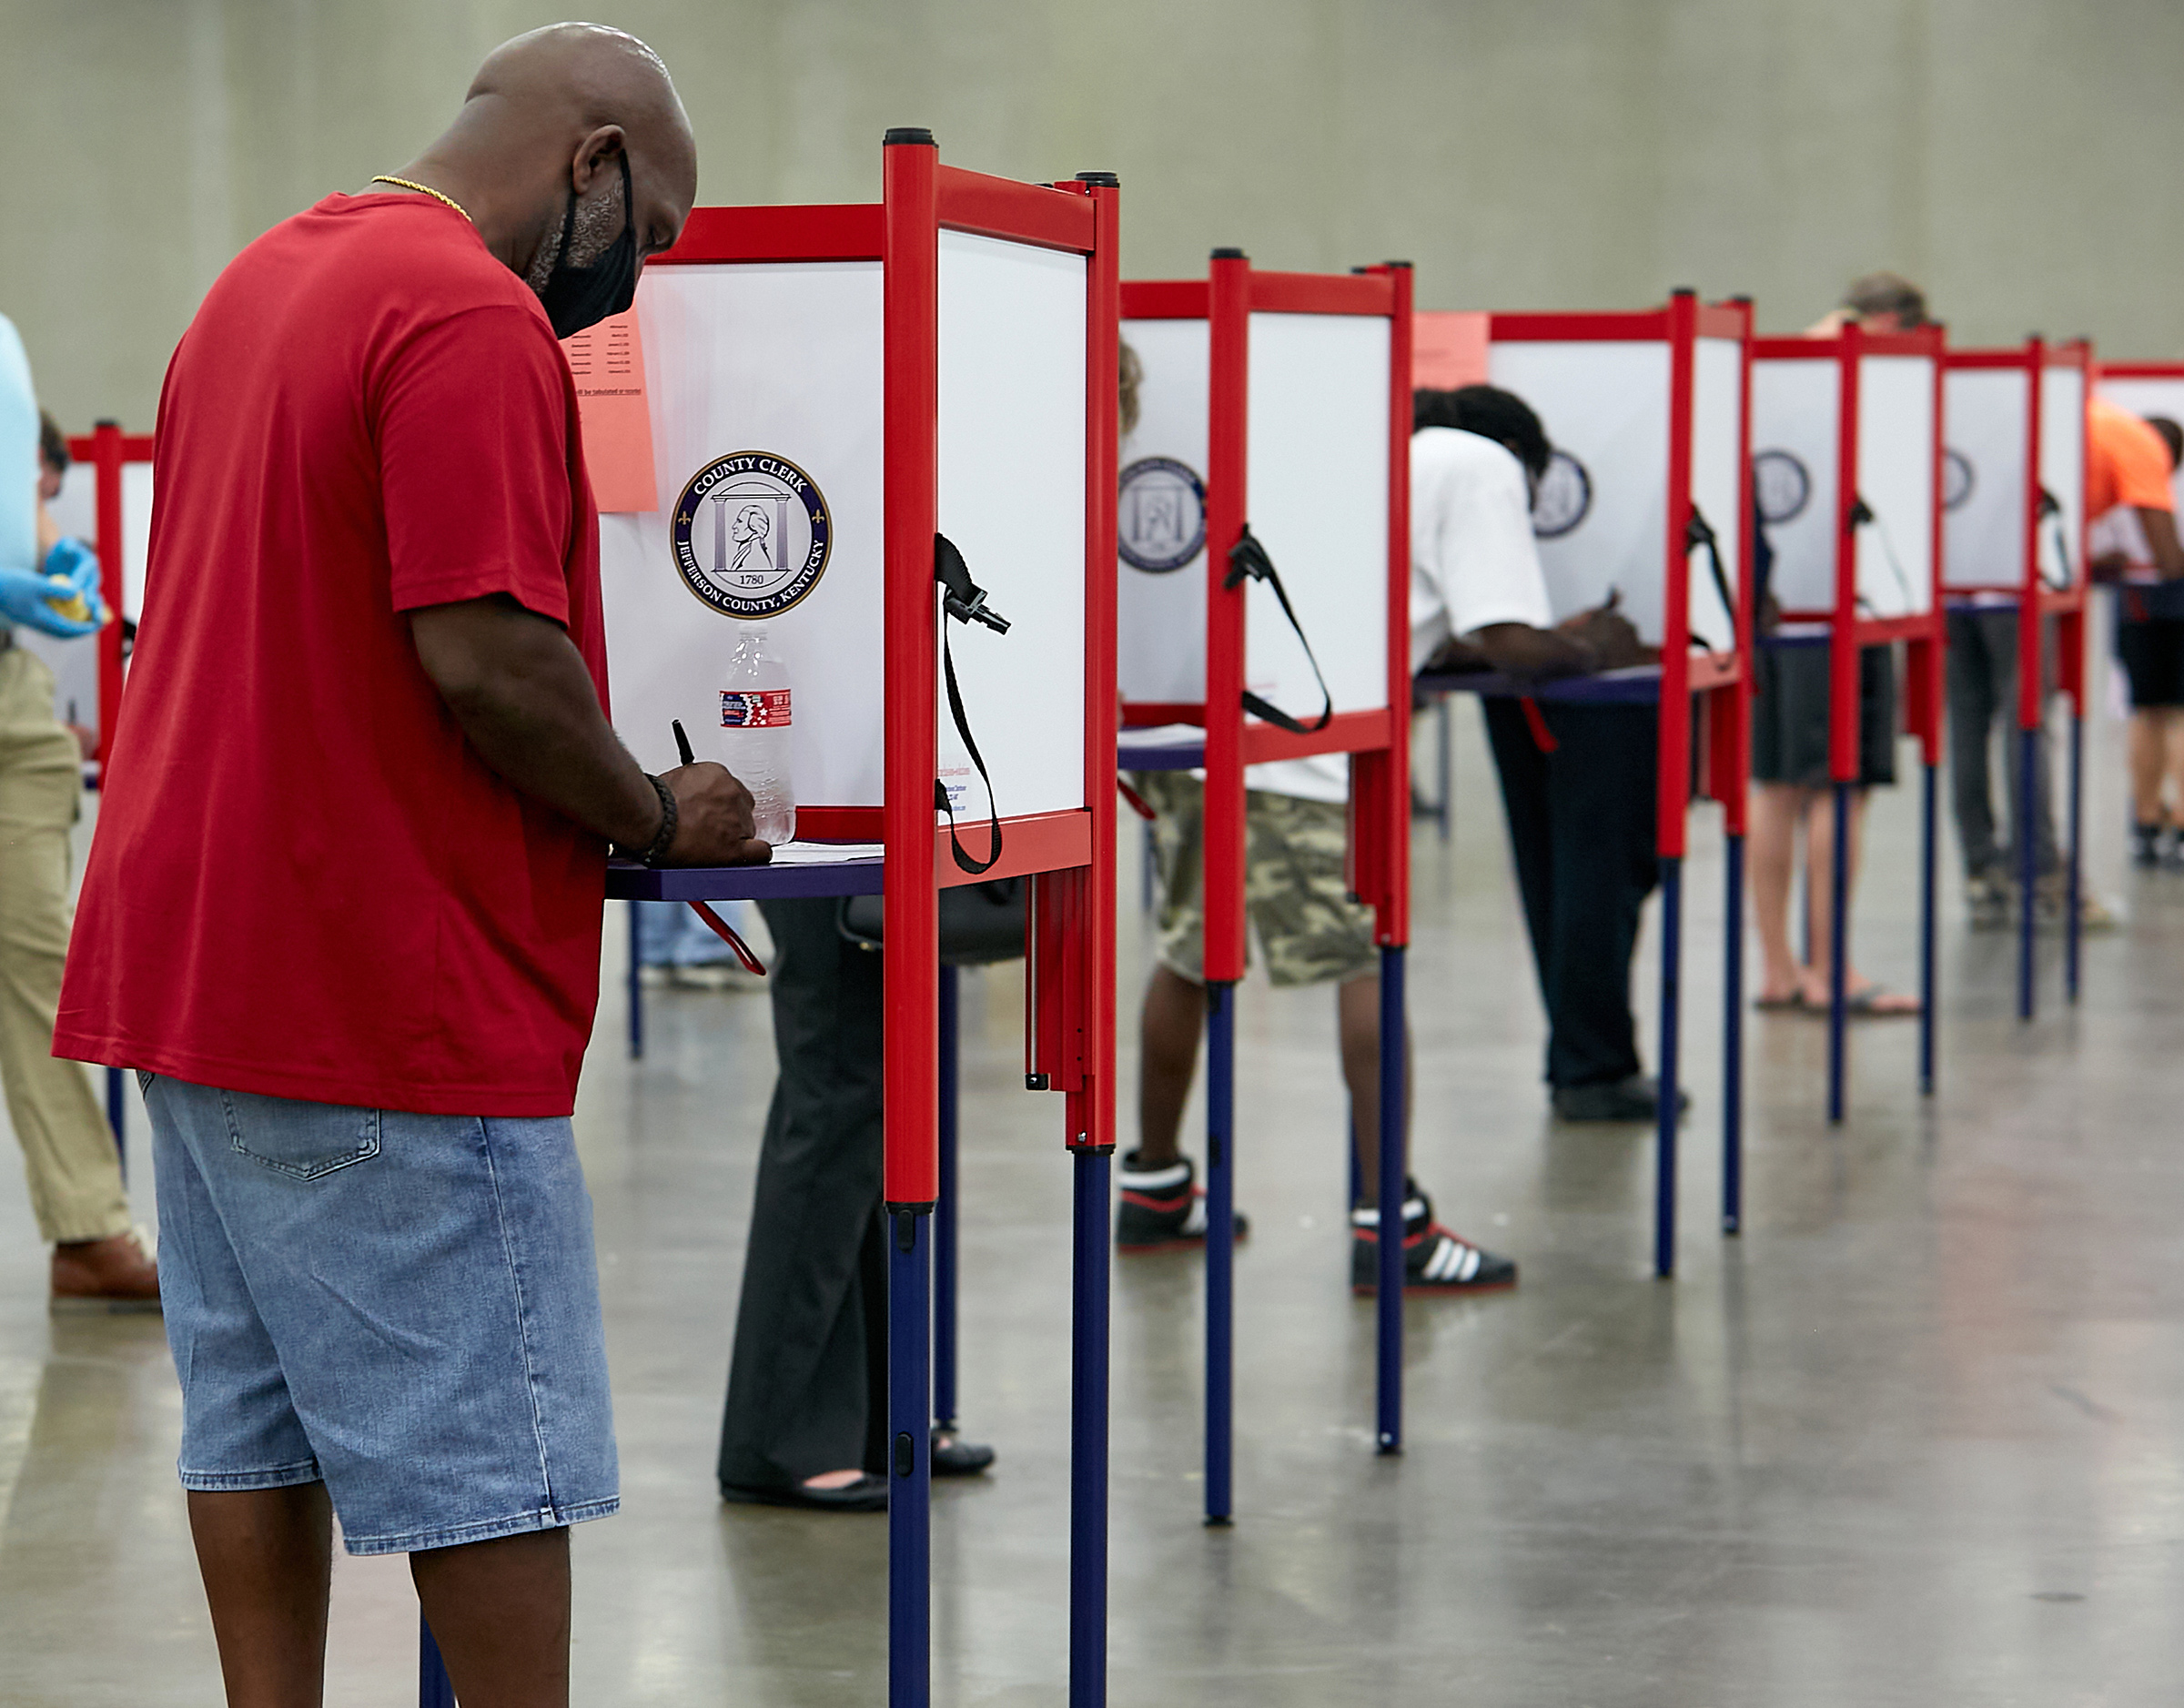 Primary voters cast their ballots at a polling place in Louisville, Ky., on June 23